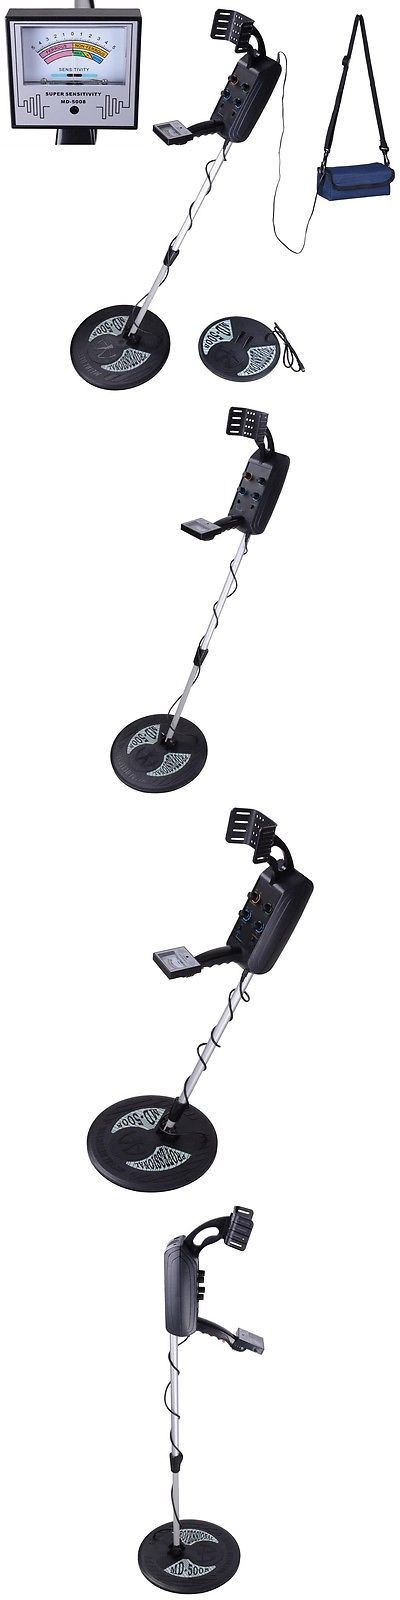 metal detector basics and theory Article on coil basics (metal detector/info) 08/10/06 - article on induction (metal  grab a shovel and dig, and then make up your very own theory of empty holes.